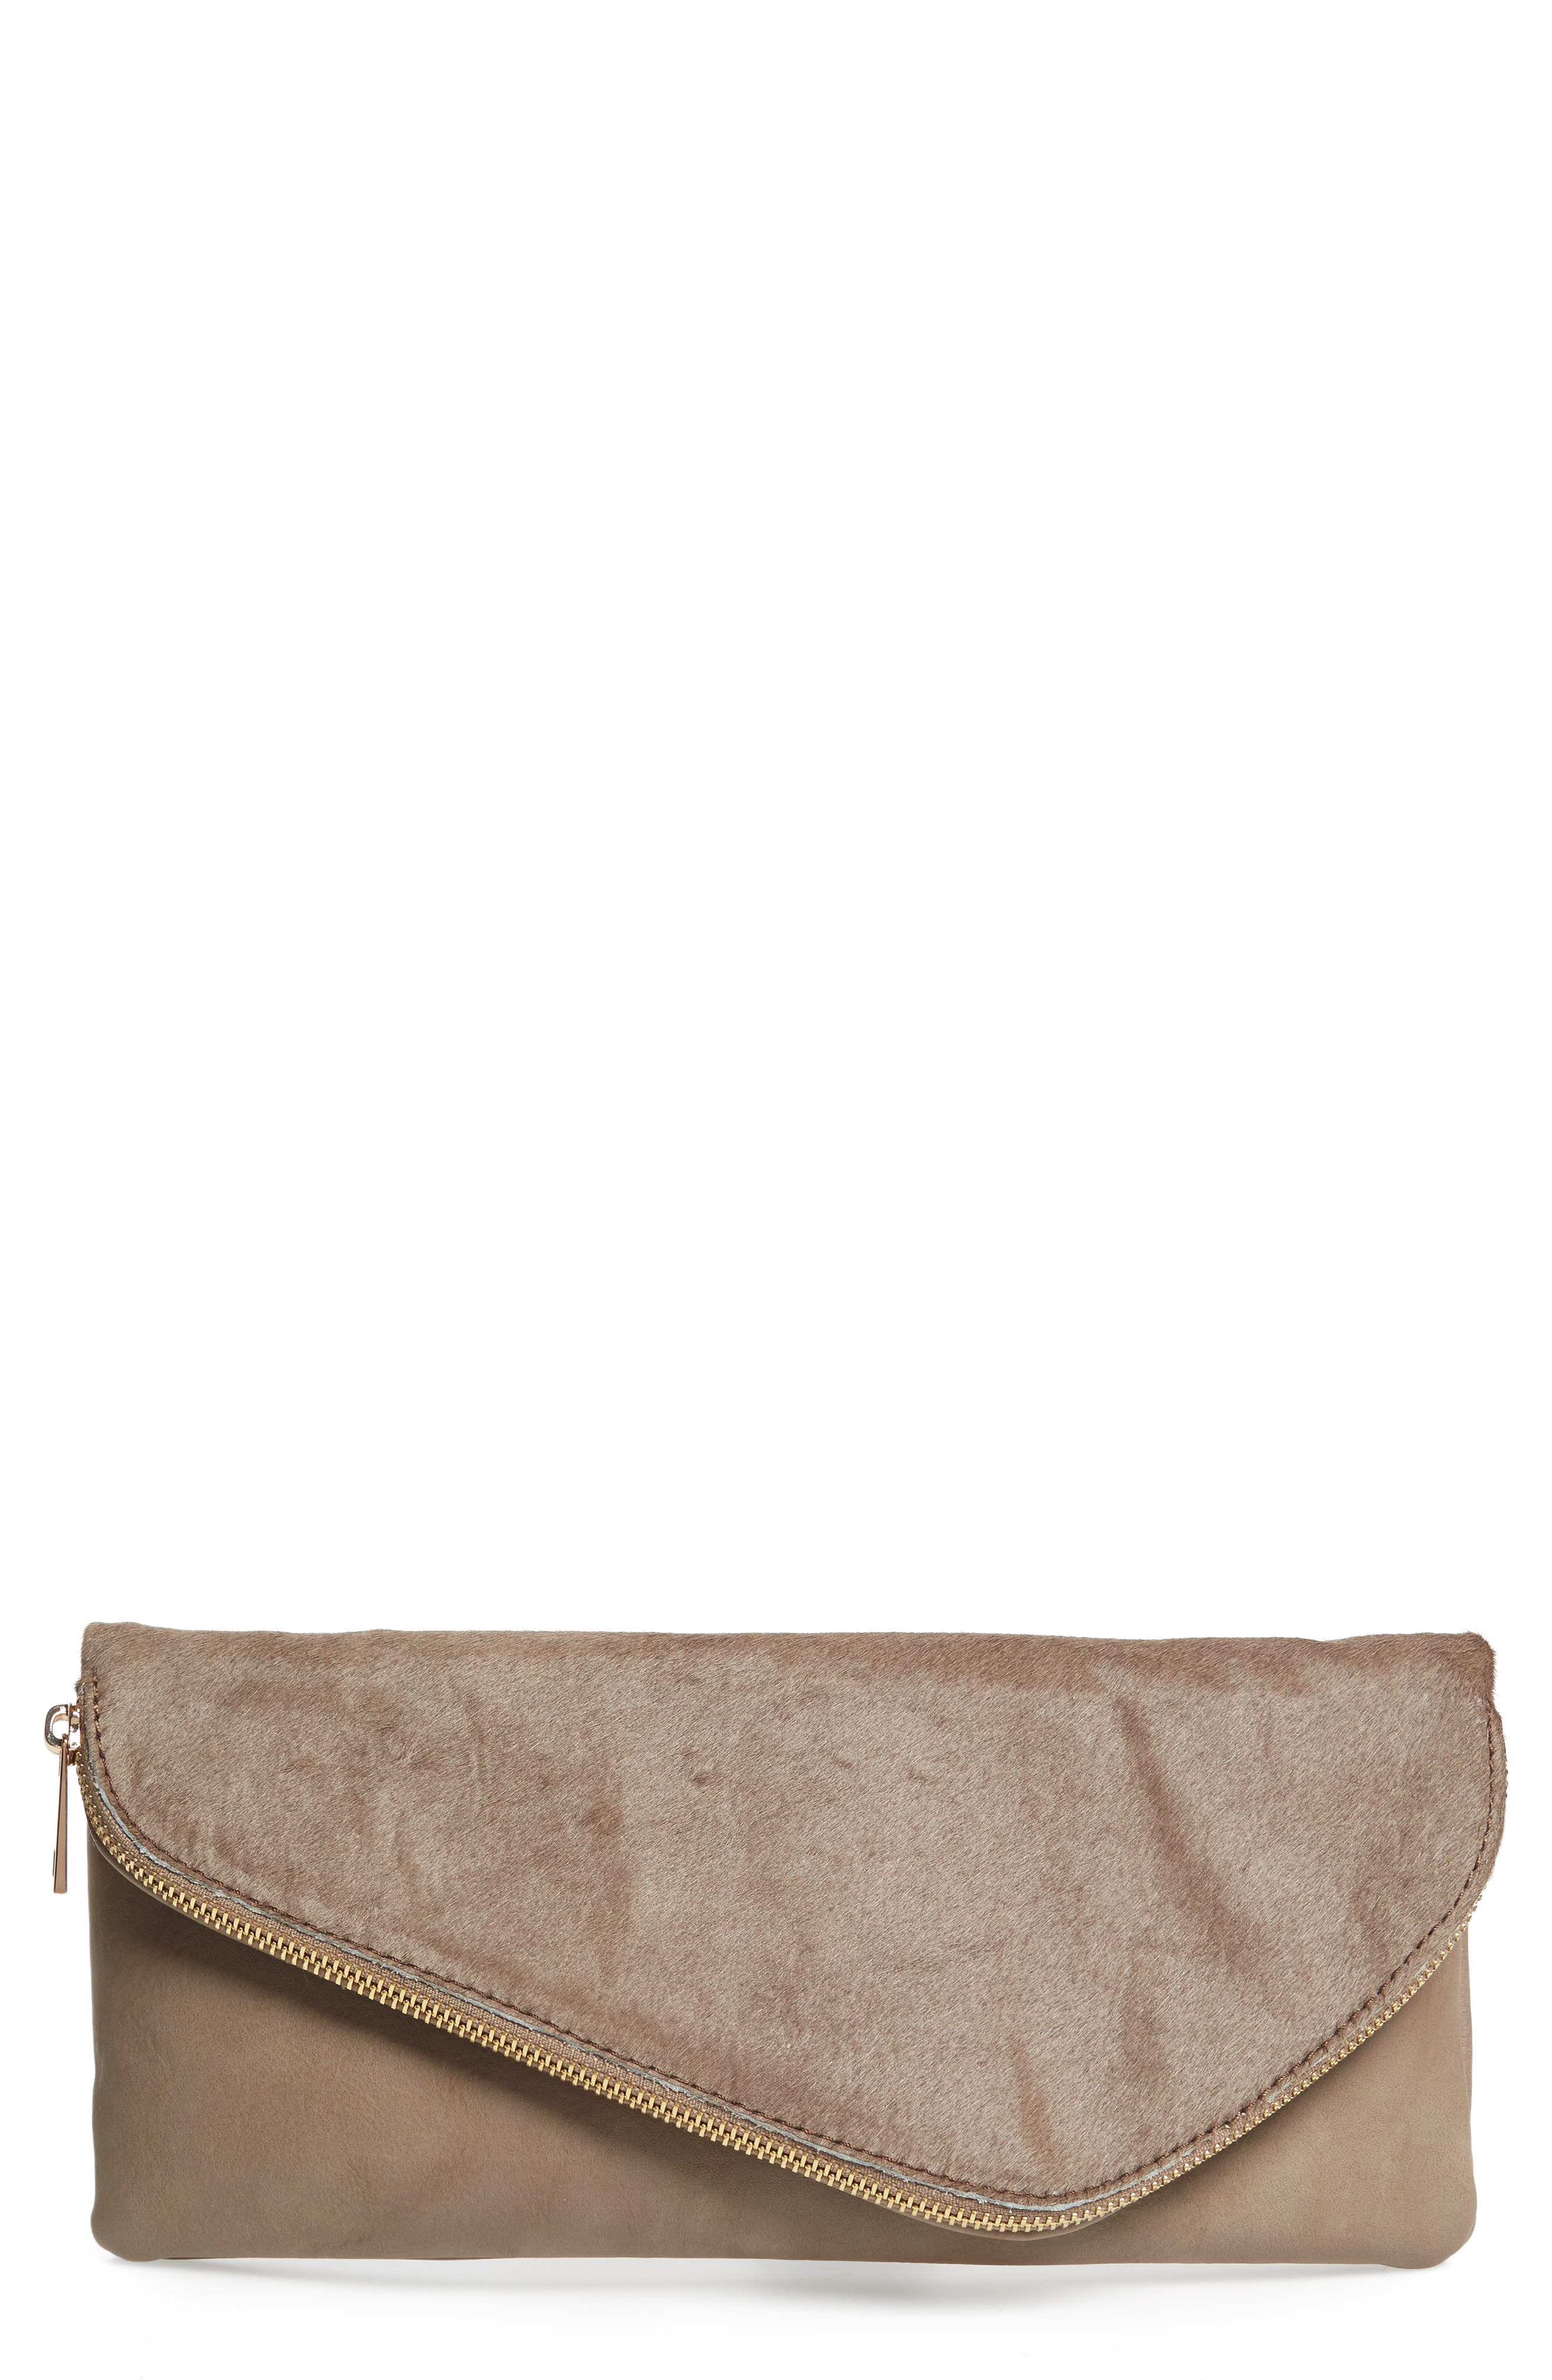 Tammi Genuine Calf Hair & Faux Leather Foldover Clutch,                         Main,                         color, Taupe